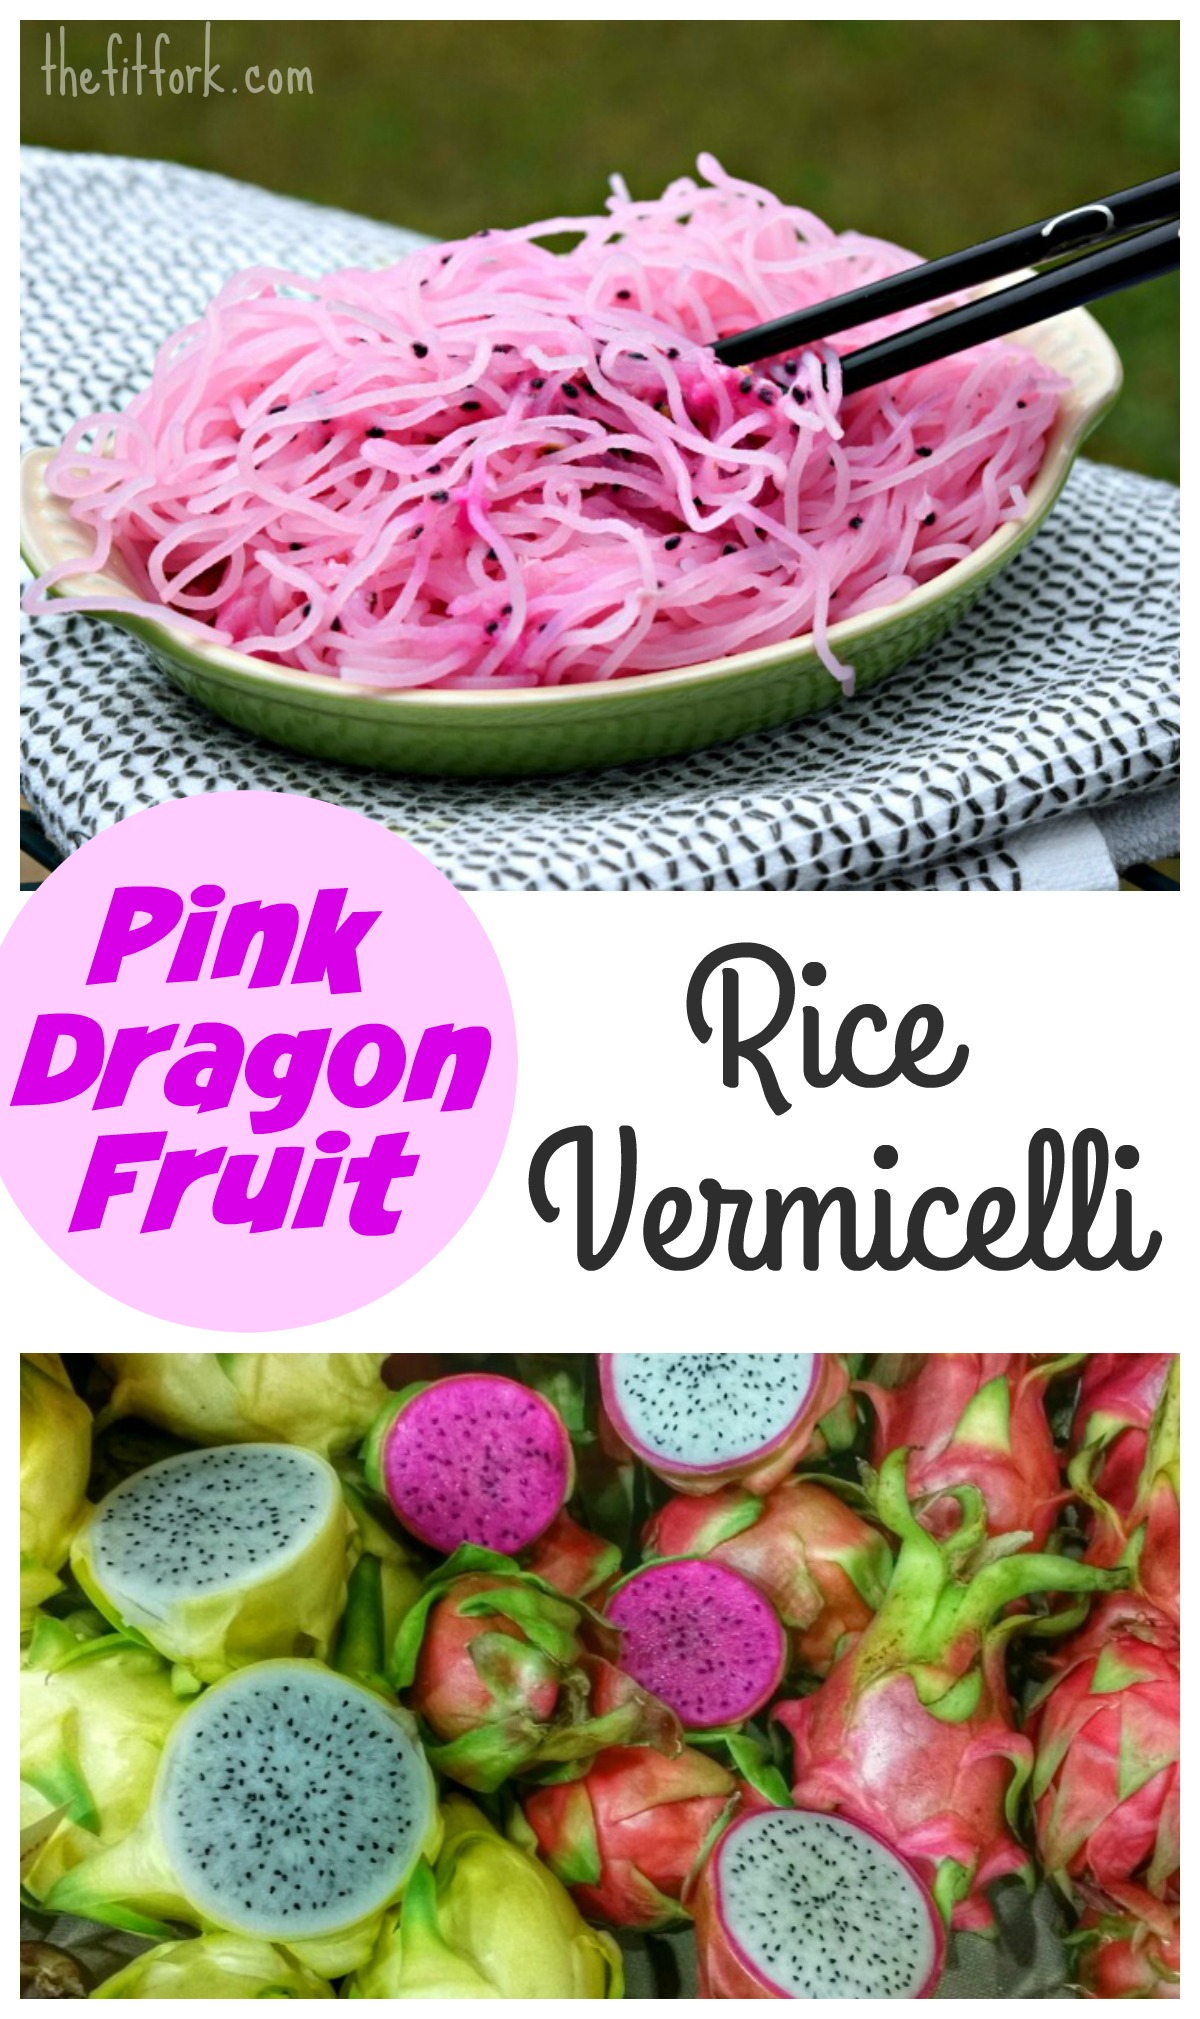 Pink Dragon Fruit Rice Vermacelli are gluten-free noodles soaked in water with this exotic fruit to create the vibrant color!